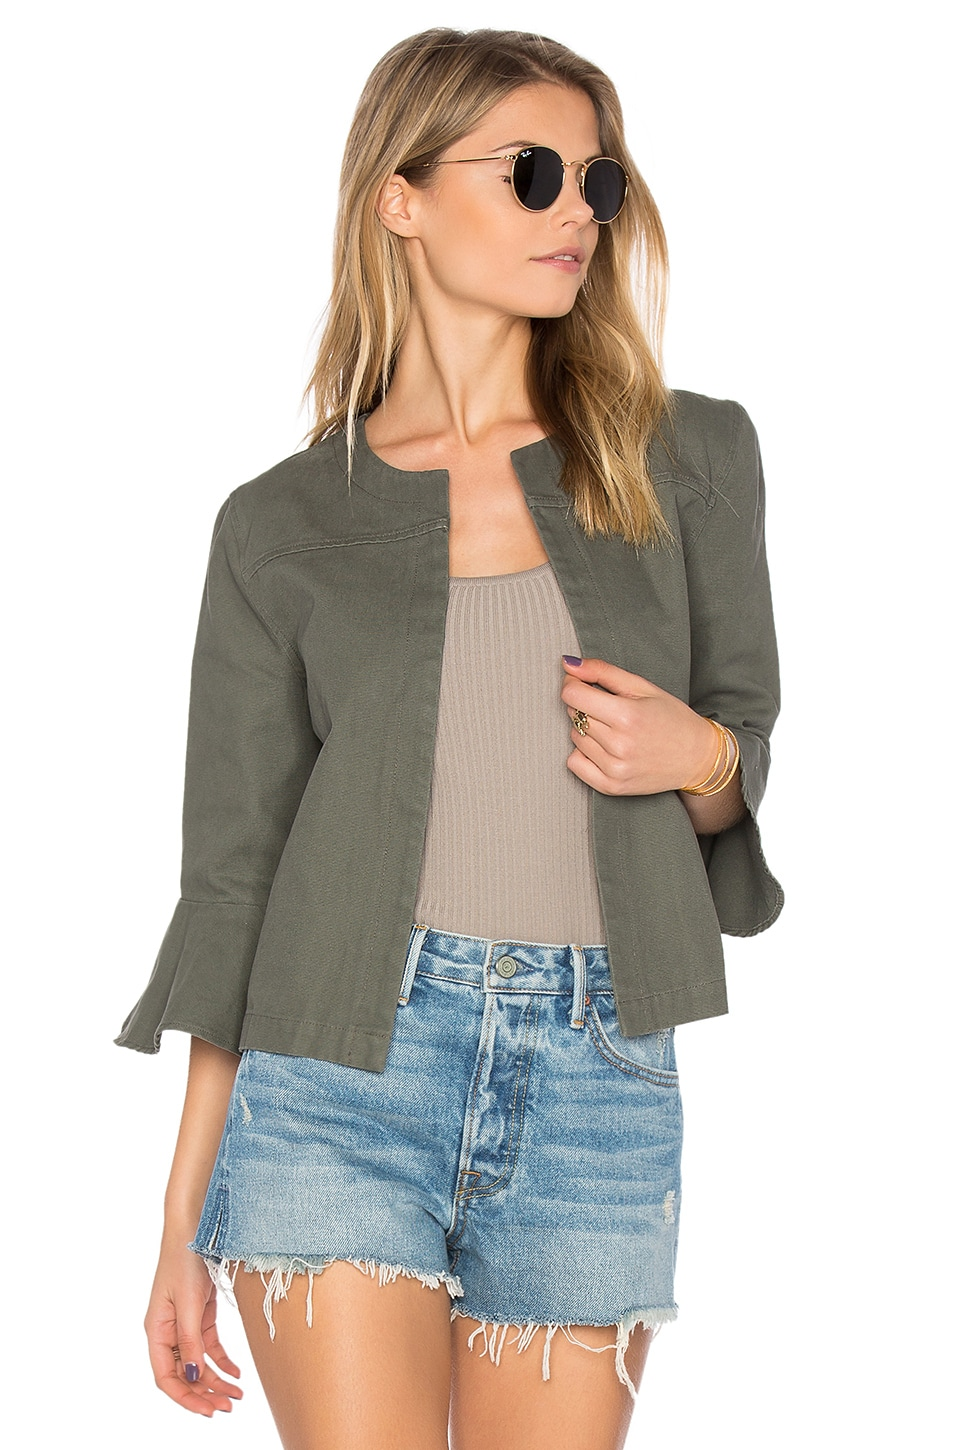 Ruffle Sleeve Jacket by LEO & SAGE